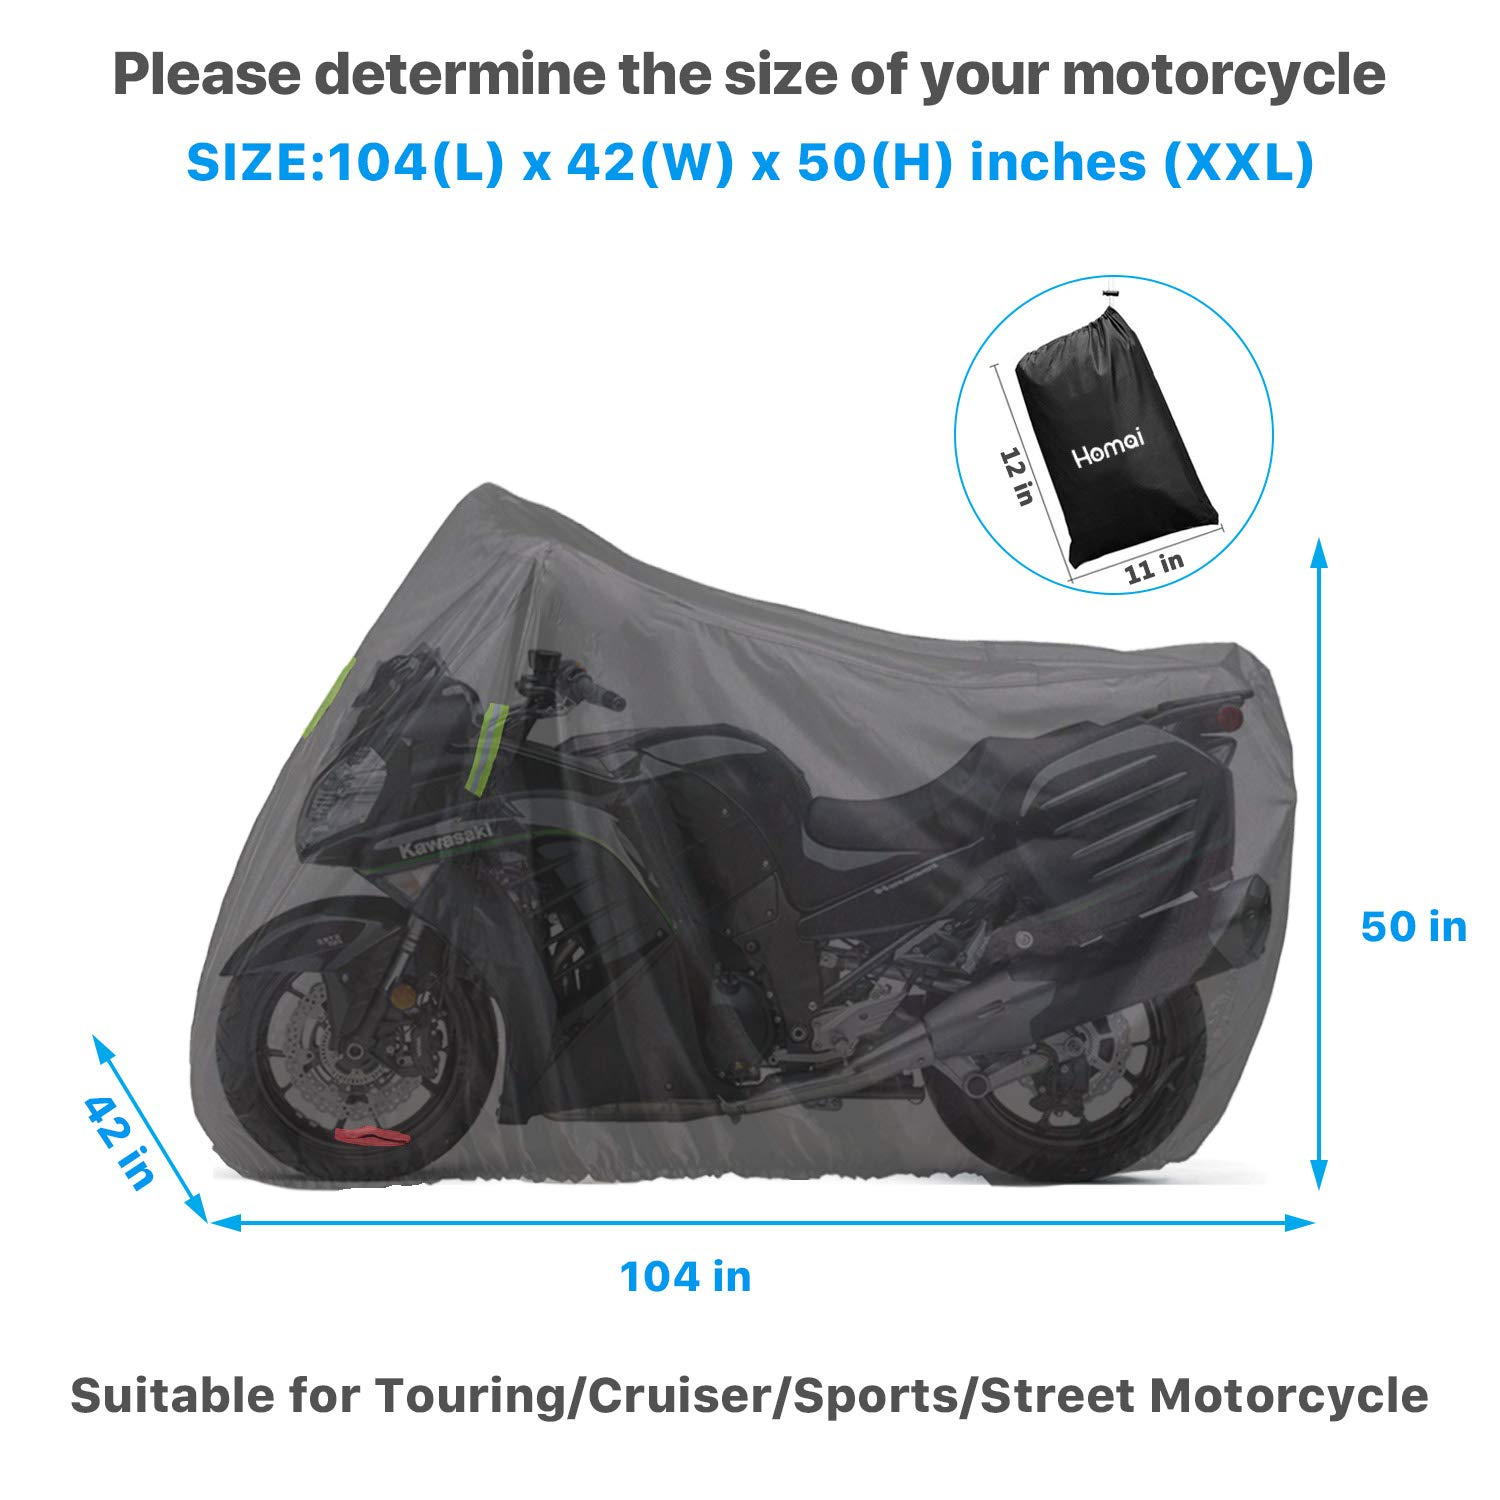 Yamaha Waterproof Durable /& Tearproof All Weather Outdoor Protection Fits up to 104 inches XXL Motorcycles Like Honda Suzuki Homai Motorcycle Cover Harley and More